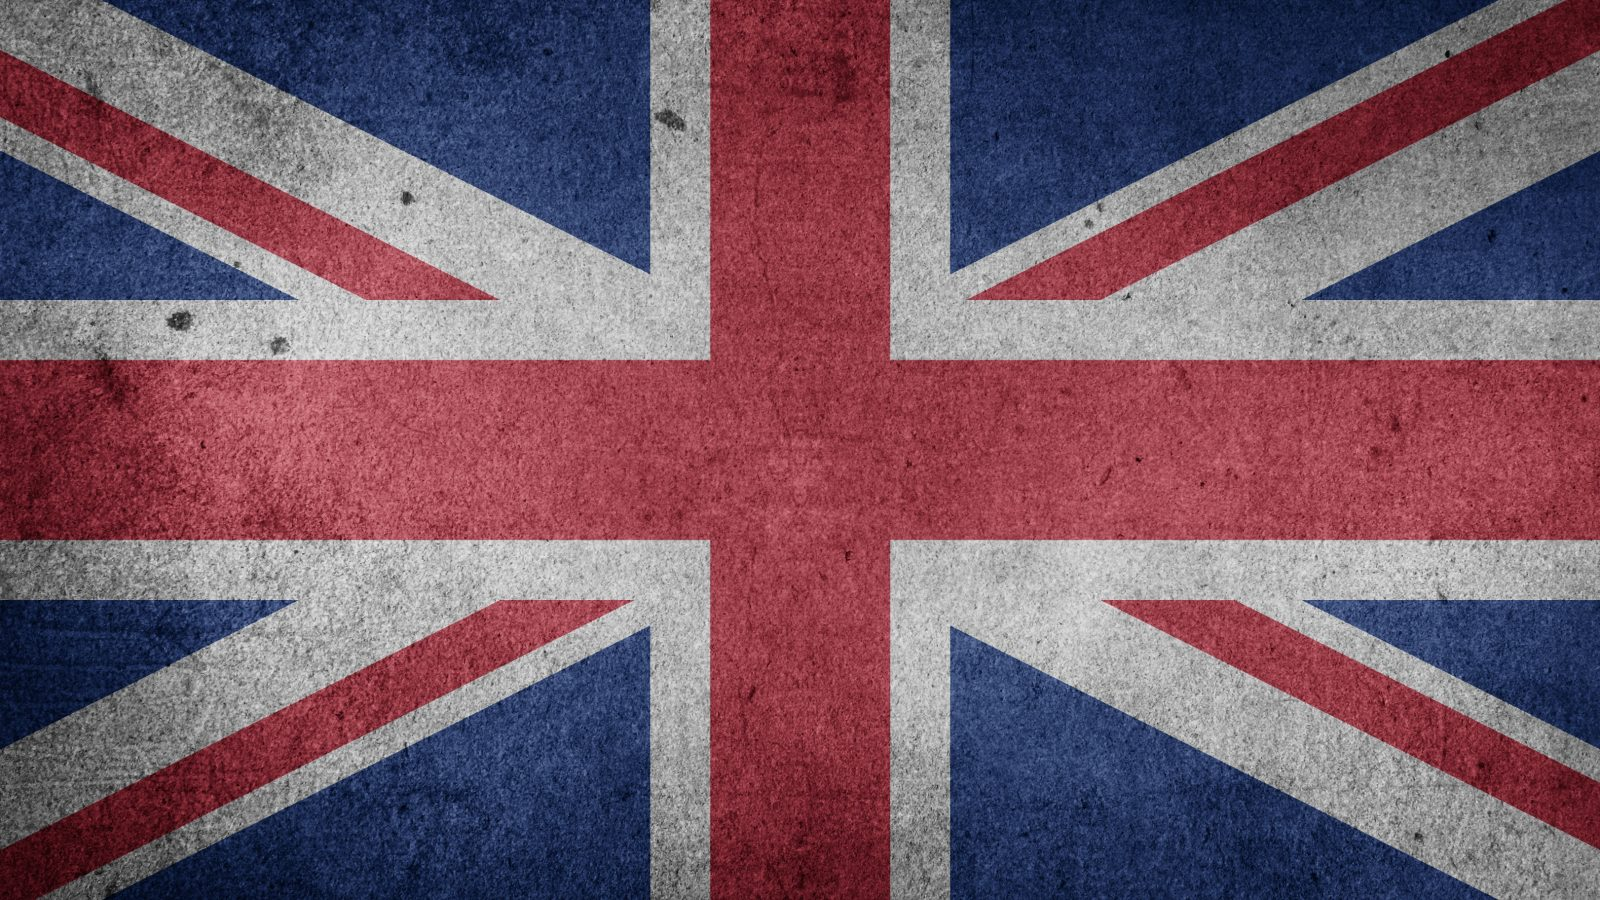 Free Download Cute Love Wallpapers For Mobile Flag Of The United Kingdom Grunge Hd Wallpaper